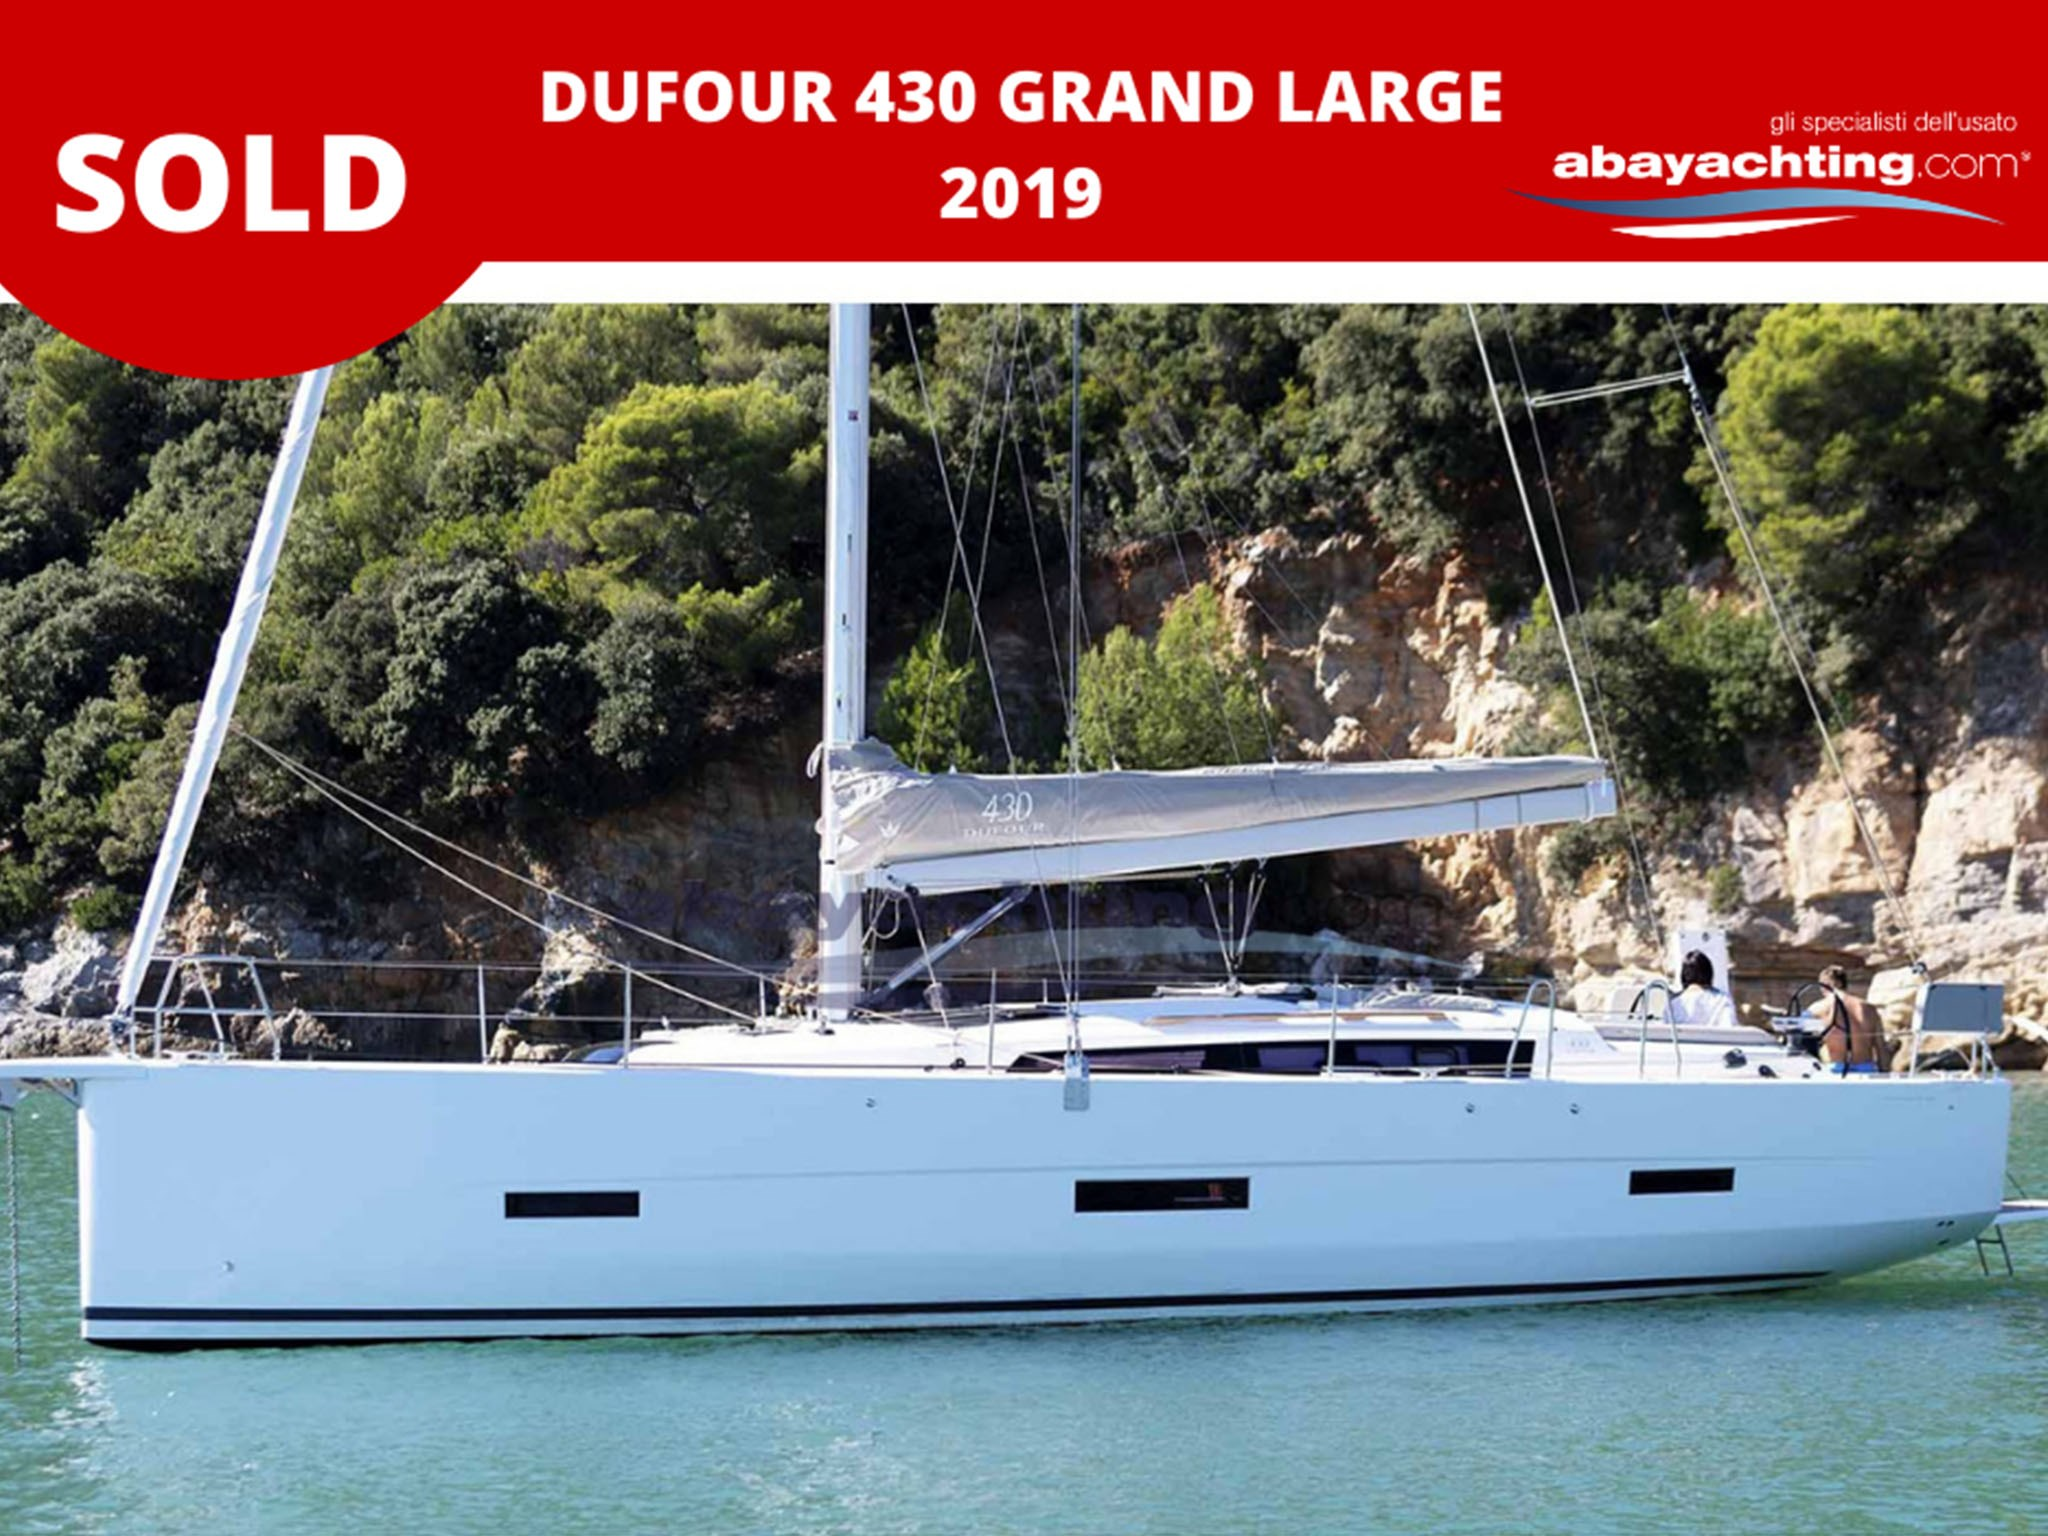 Dufour 430 sold